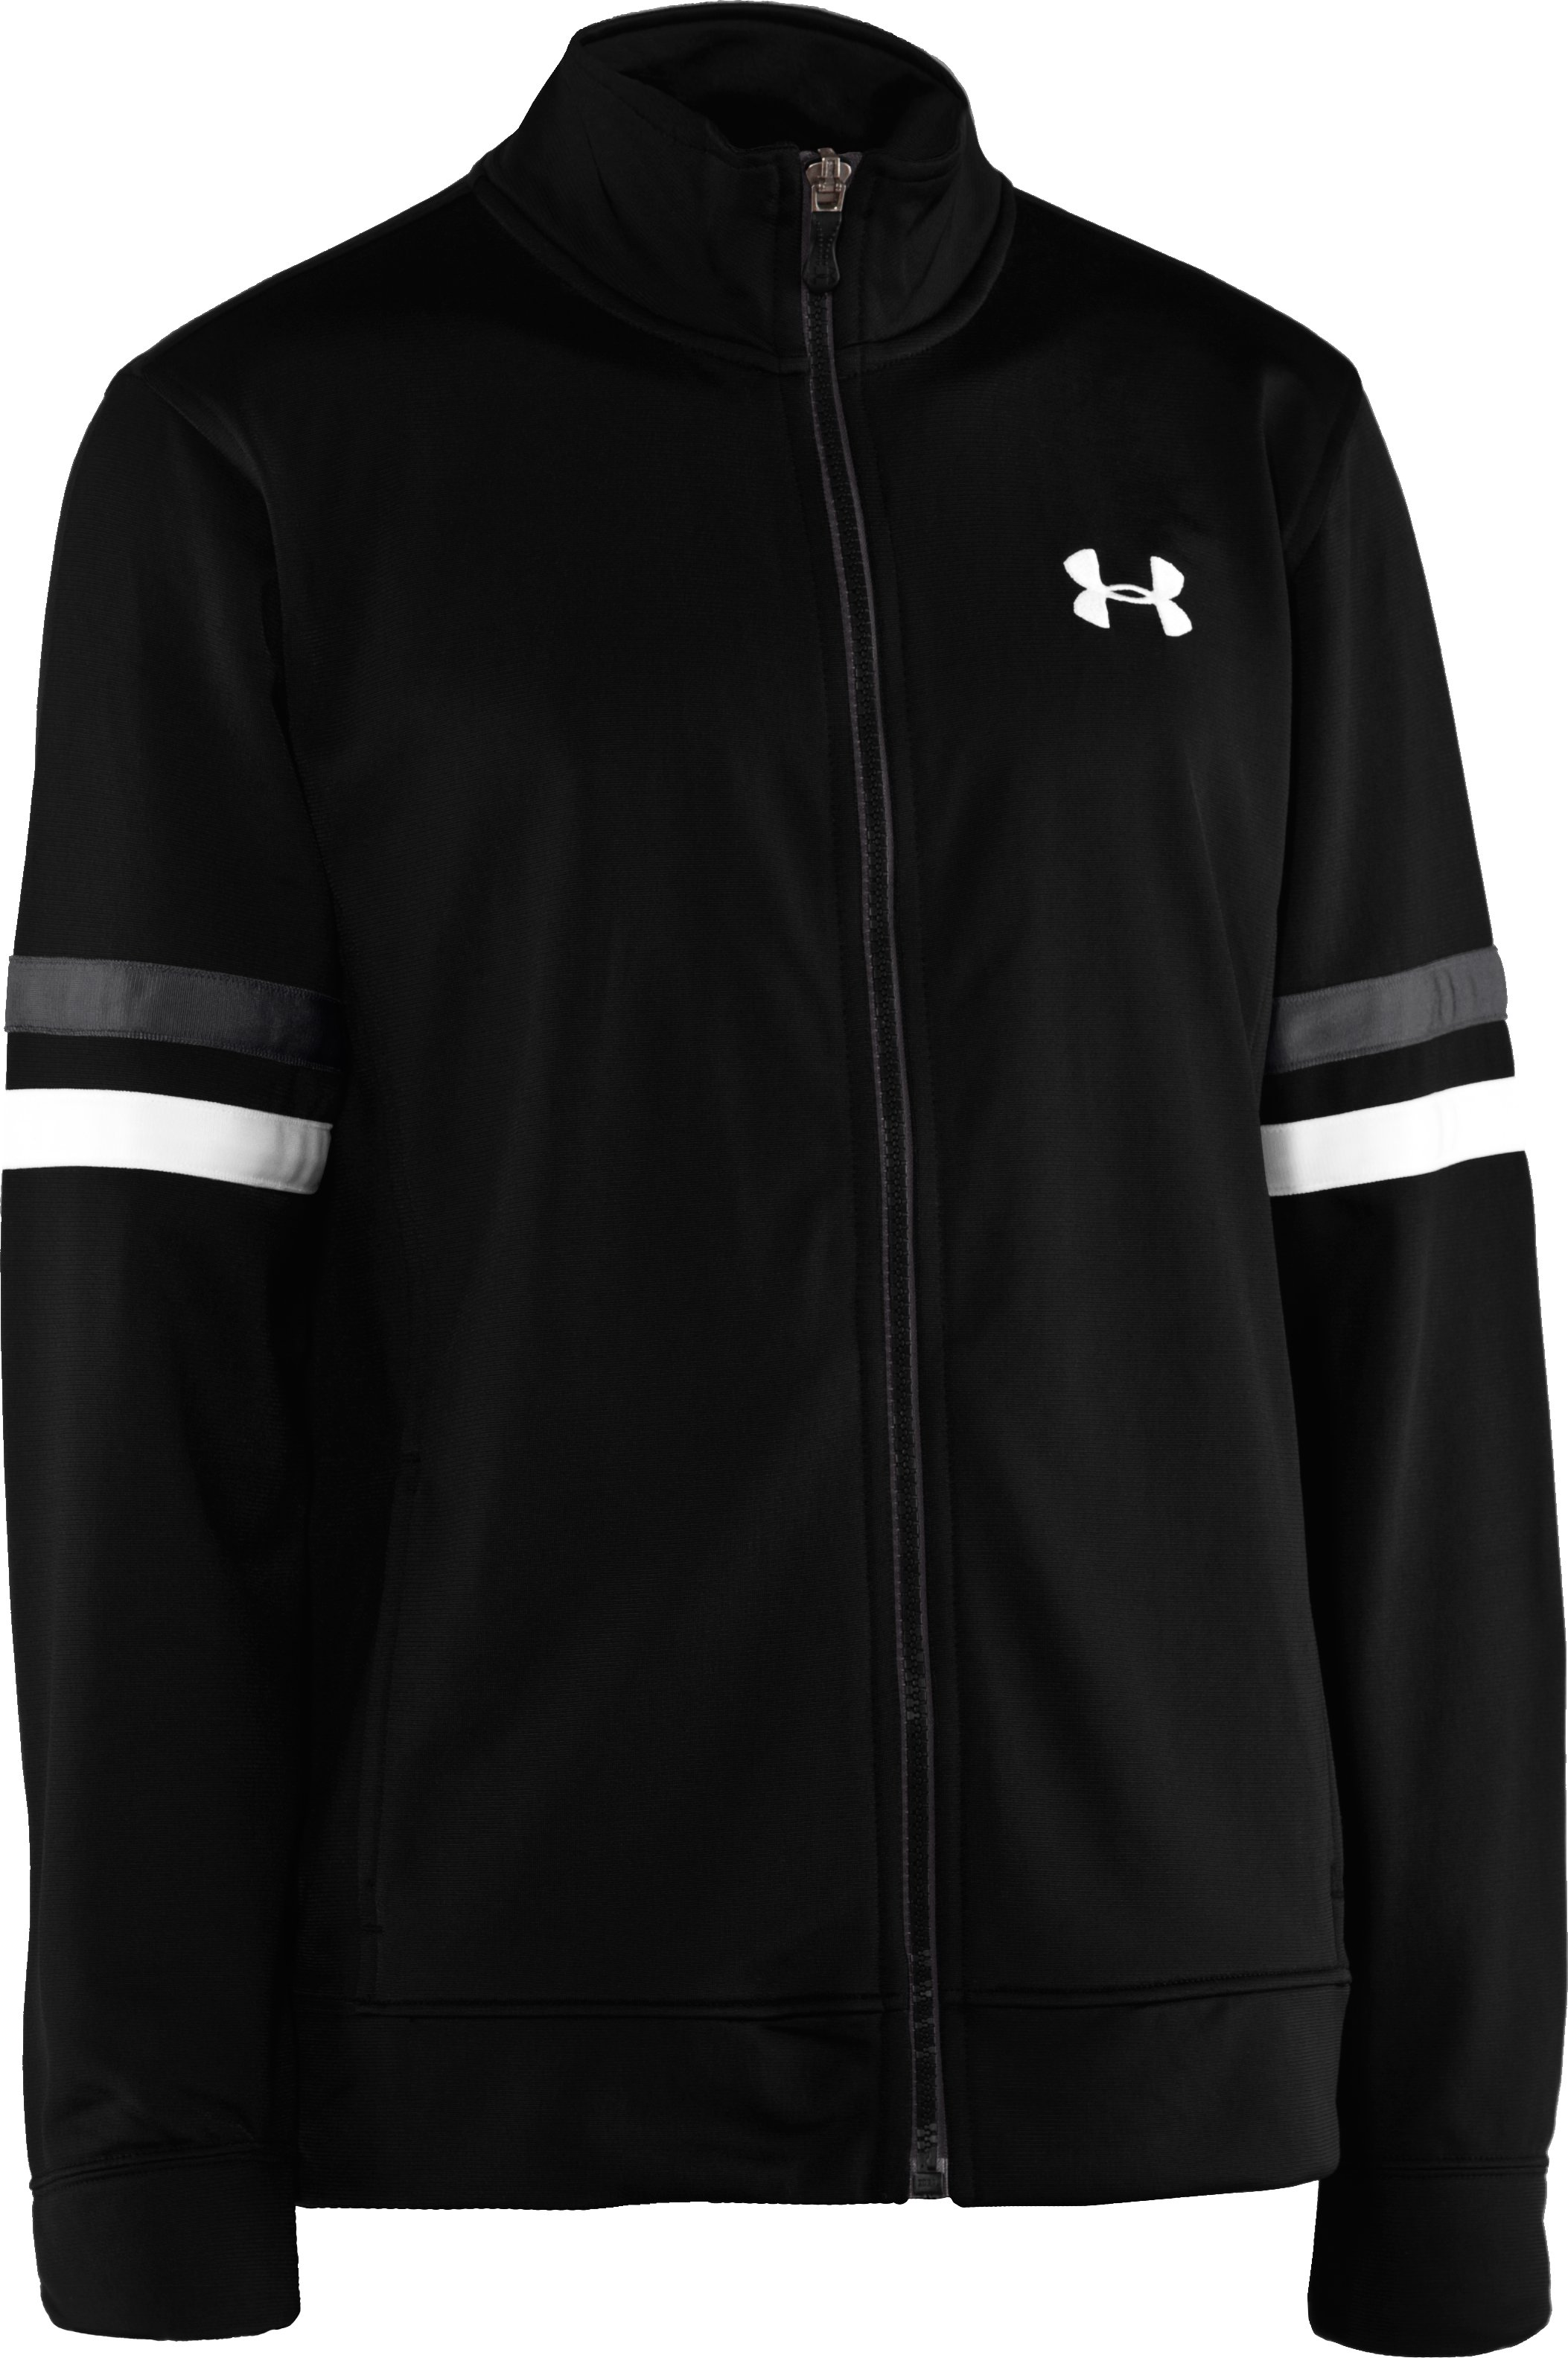 Boys' UA Brawler Warm-Up Jacket, Black